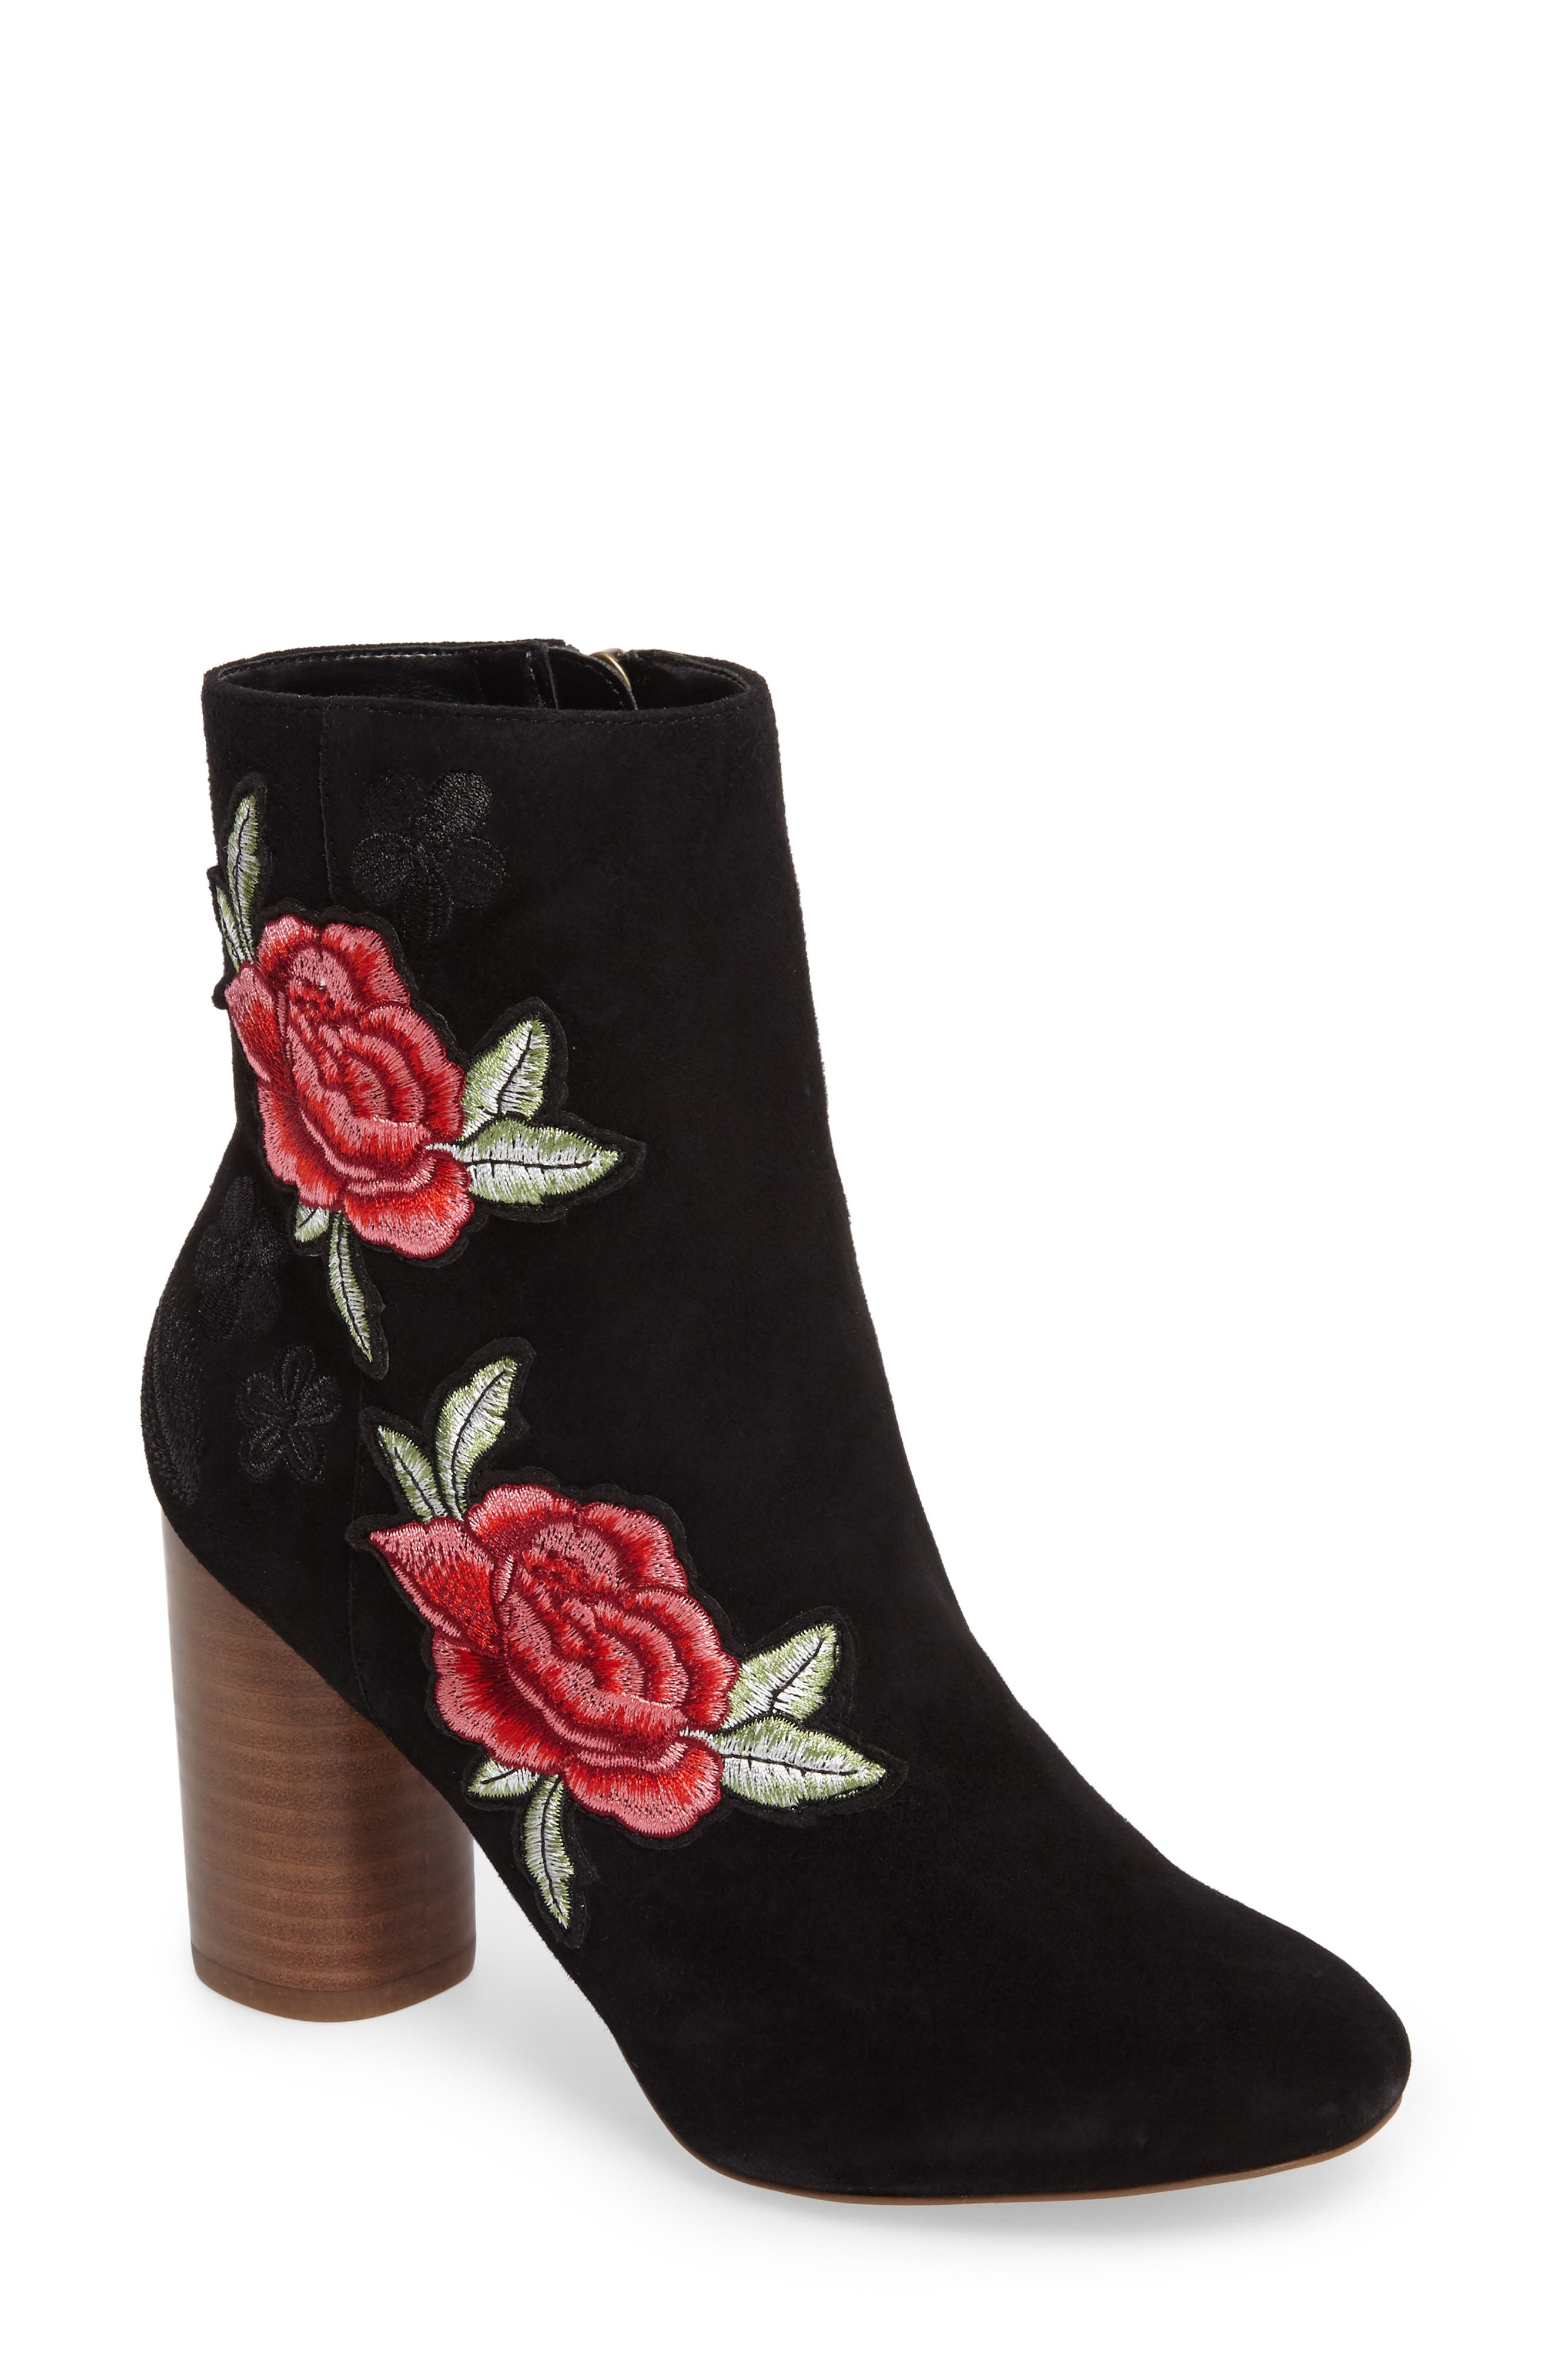 Main Image - Sole Society Mulholland Embroidered Boot (Women)